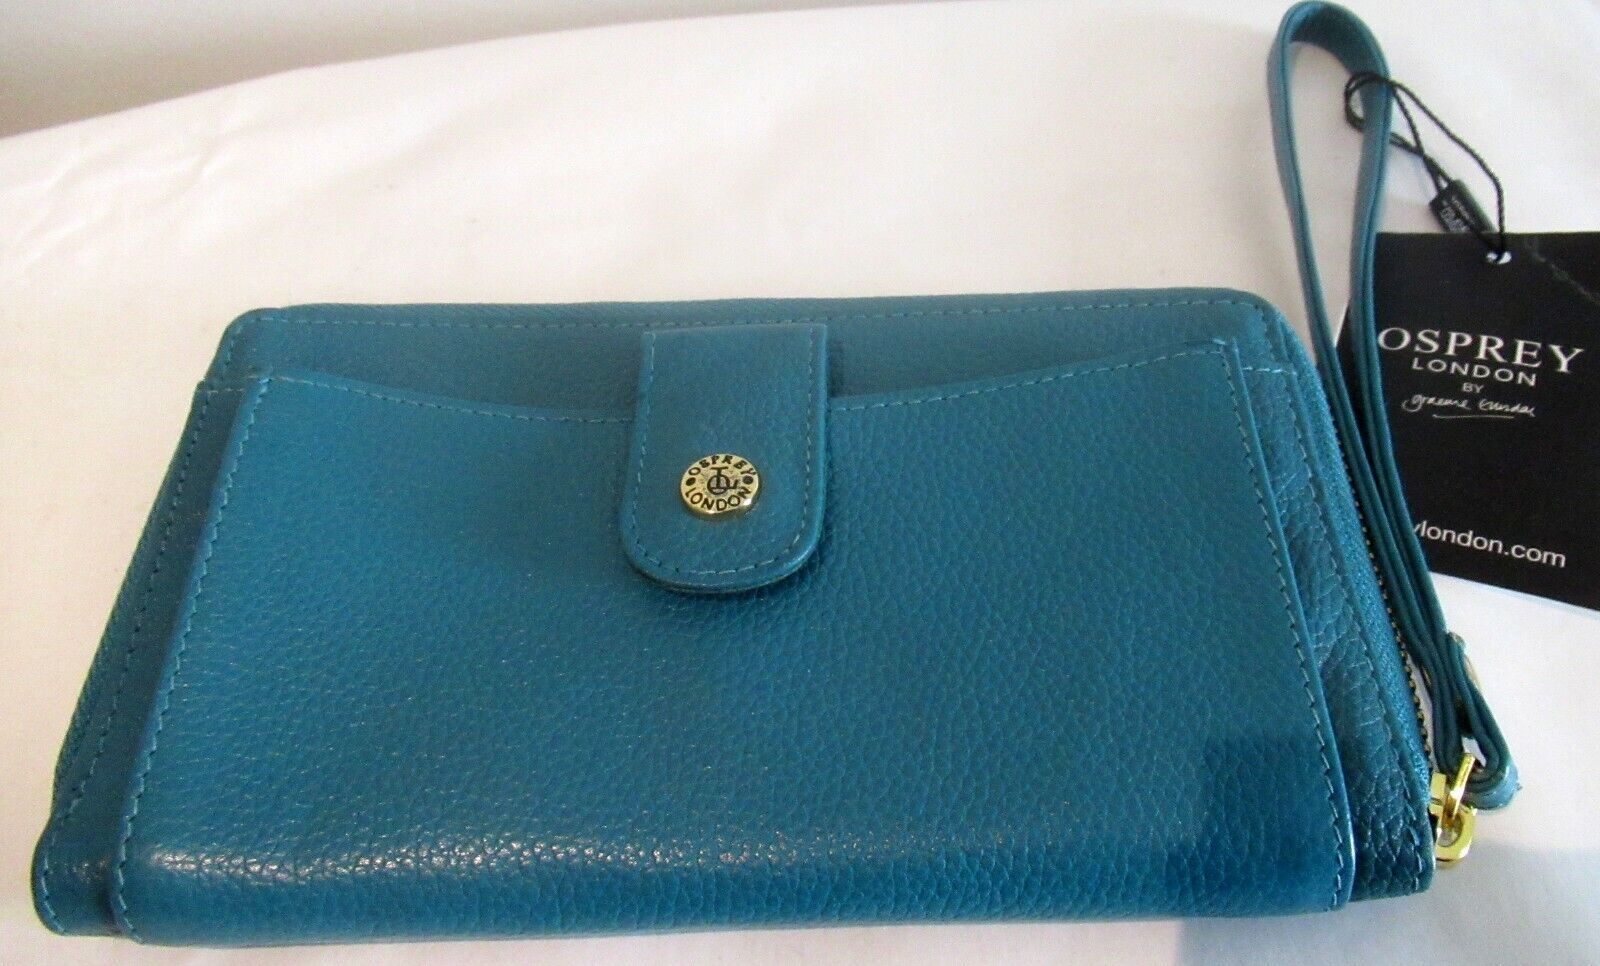 OSPREY phone wallet purse zip teal large card LEATHER CHRISTMAS GIFT